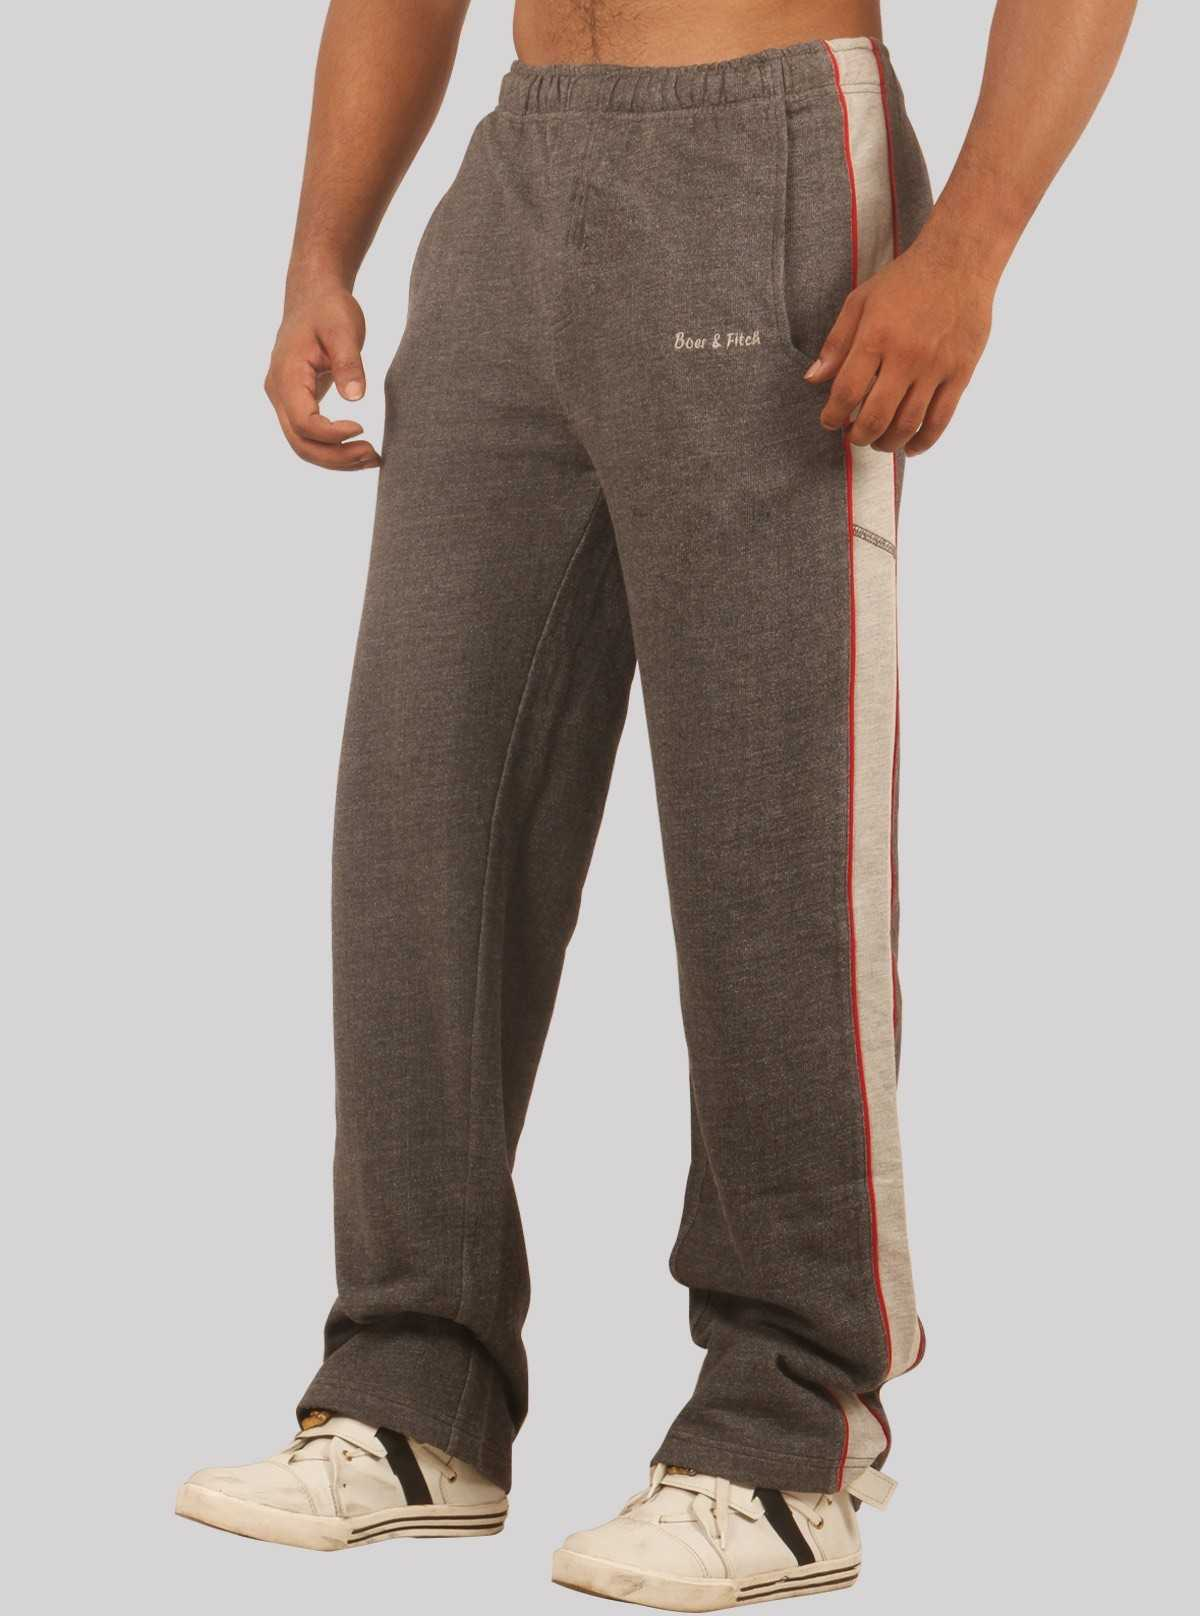 Charcol Melange Track Pants Boer and Fitch - 1